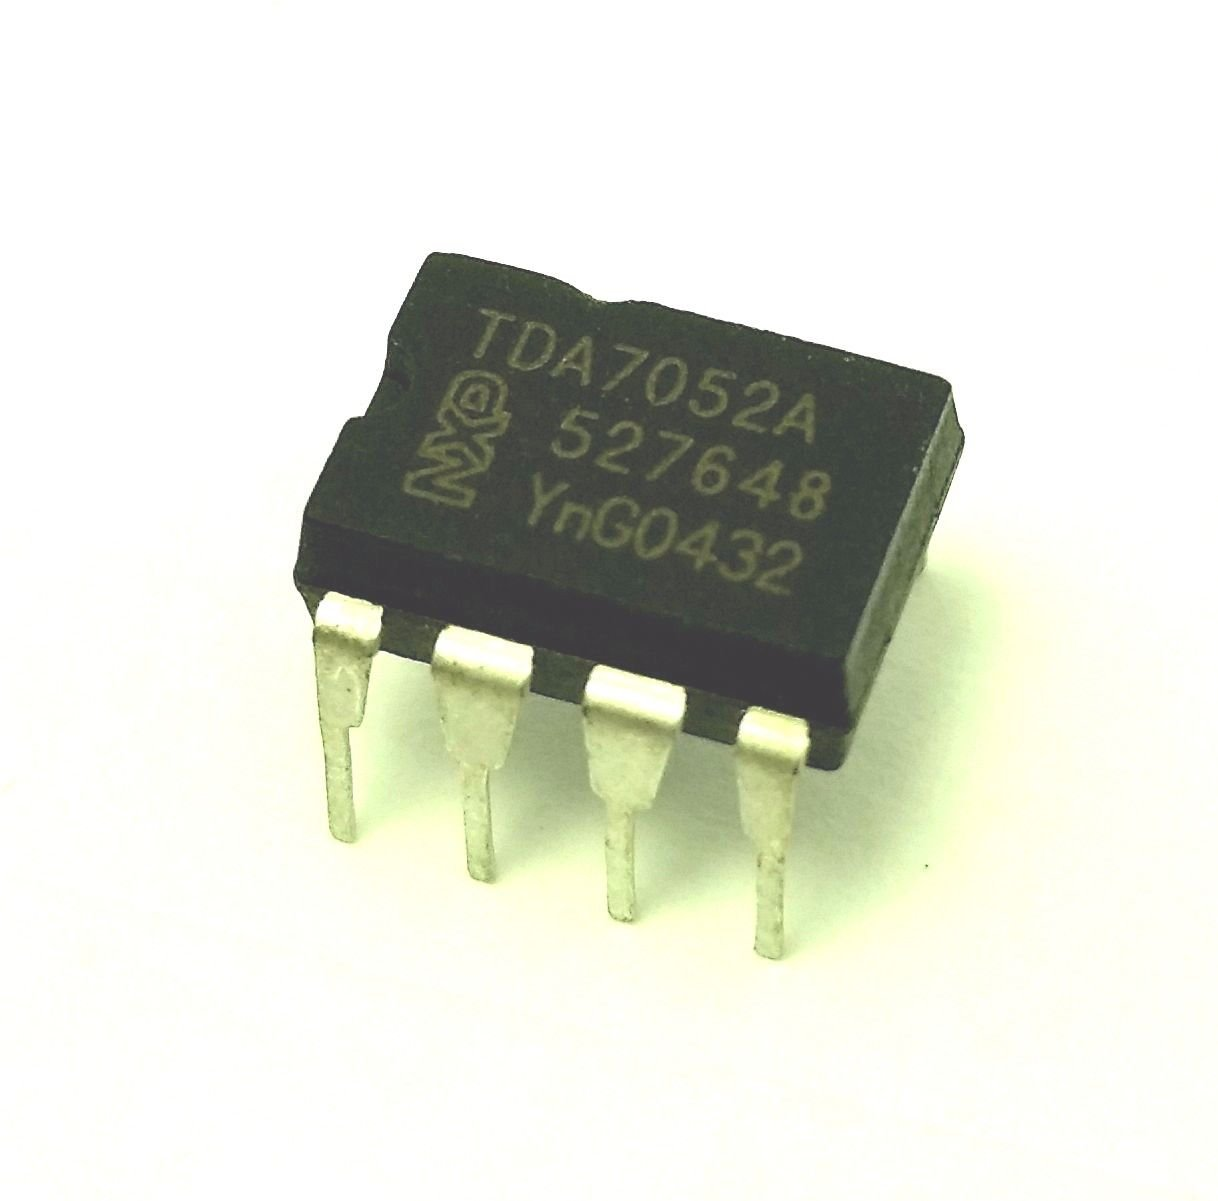 Pack of 5 Philips//NXP TDA7052A IC Mono Audio Amplifier /& 8-Pin DIP Sockets with Machined Contact Pins